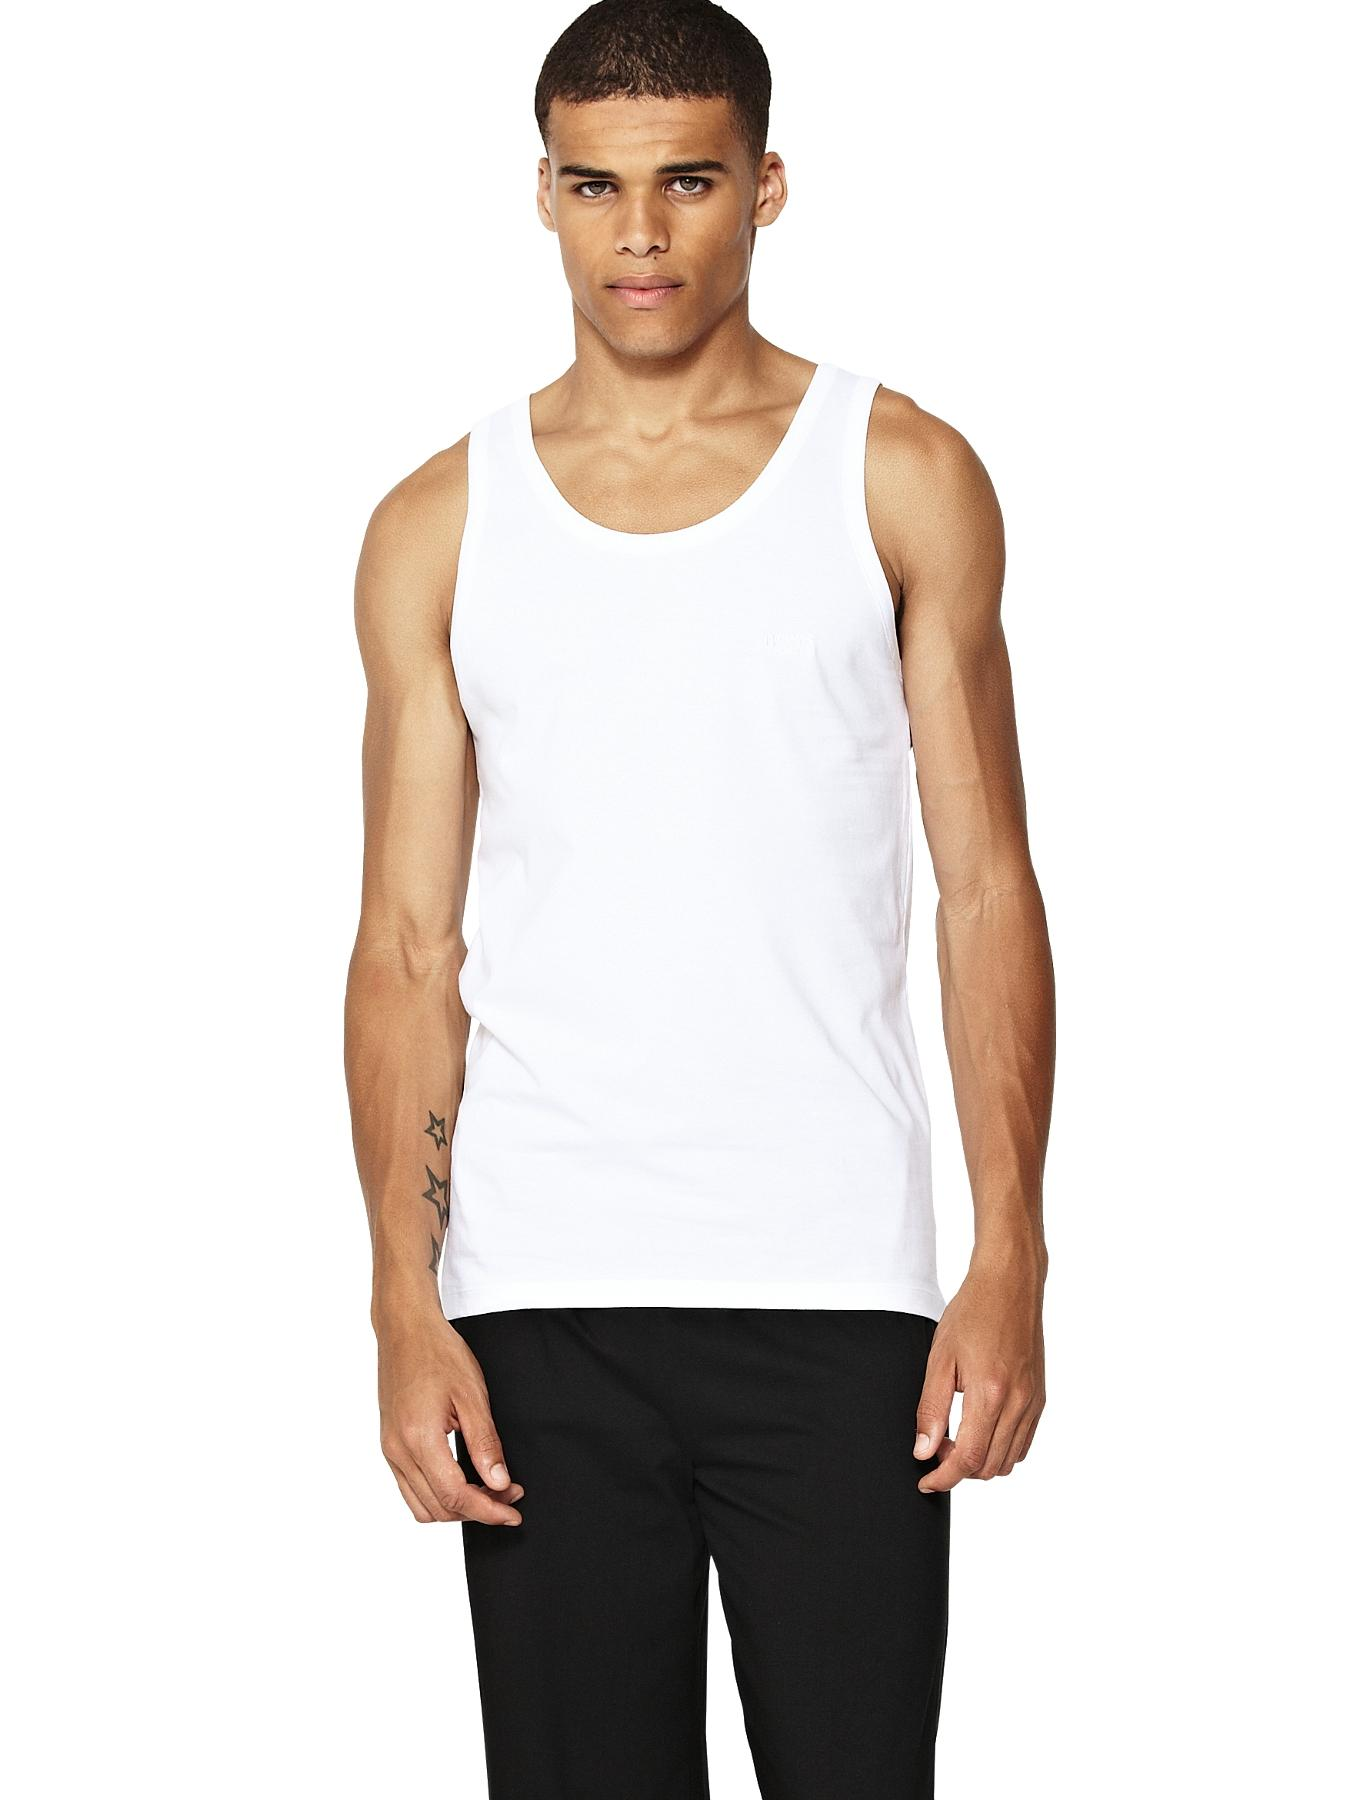 Hugo Boss Mens Core Vests (3 Pack) - White, White